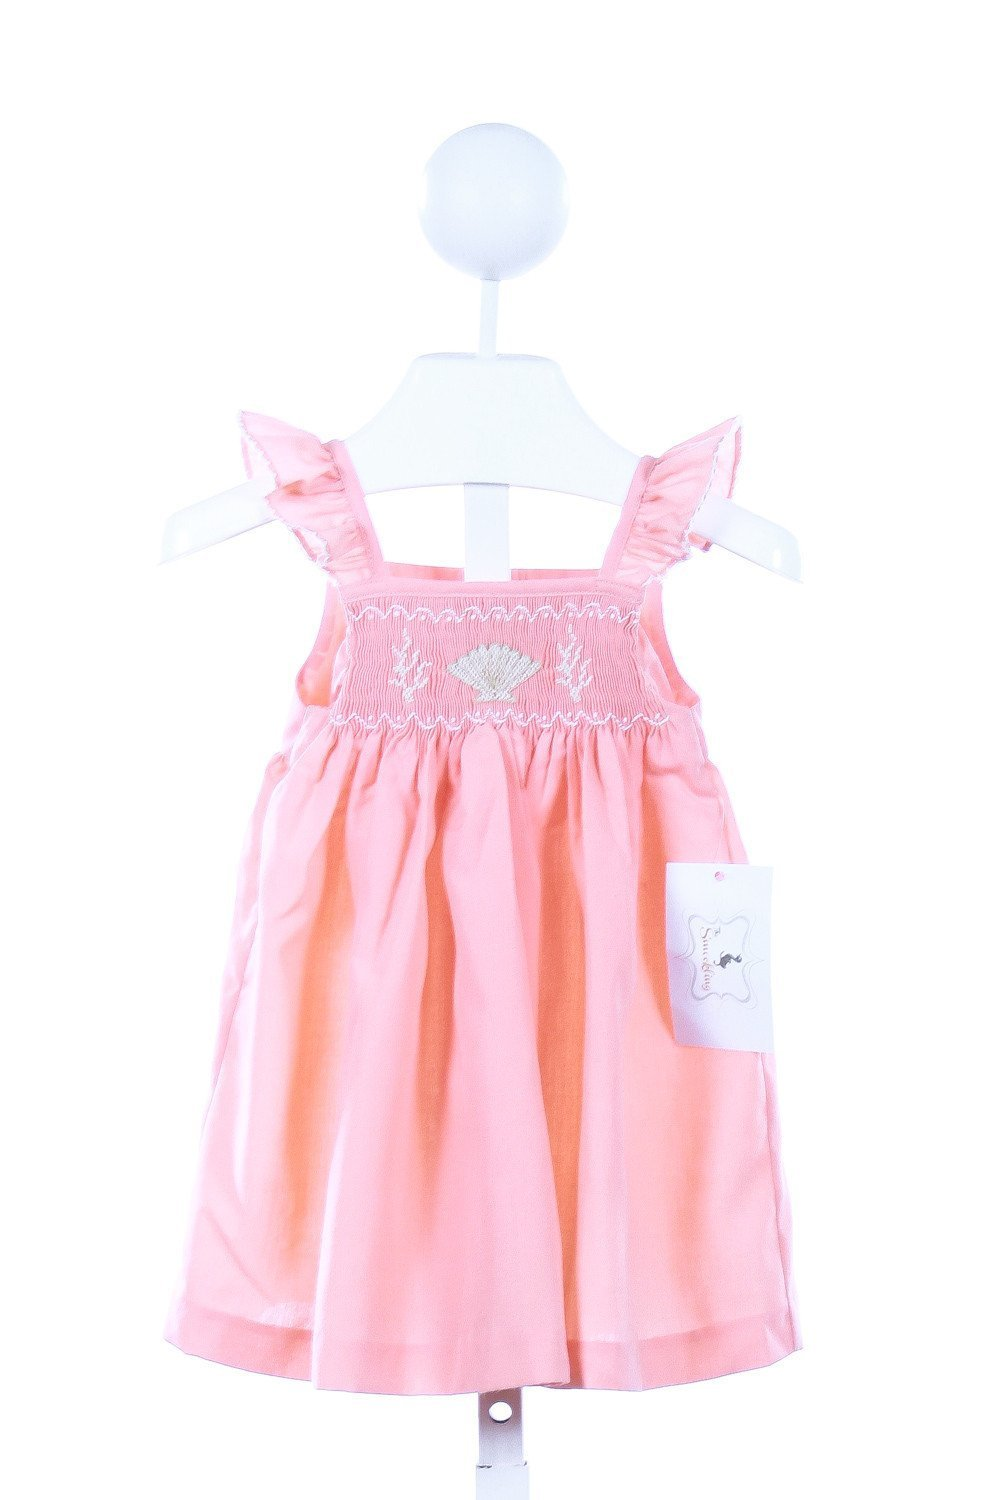 THE SMOCKLING  ORANGE   SMOCKED CASUAL DRESS